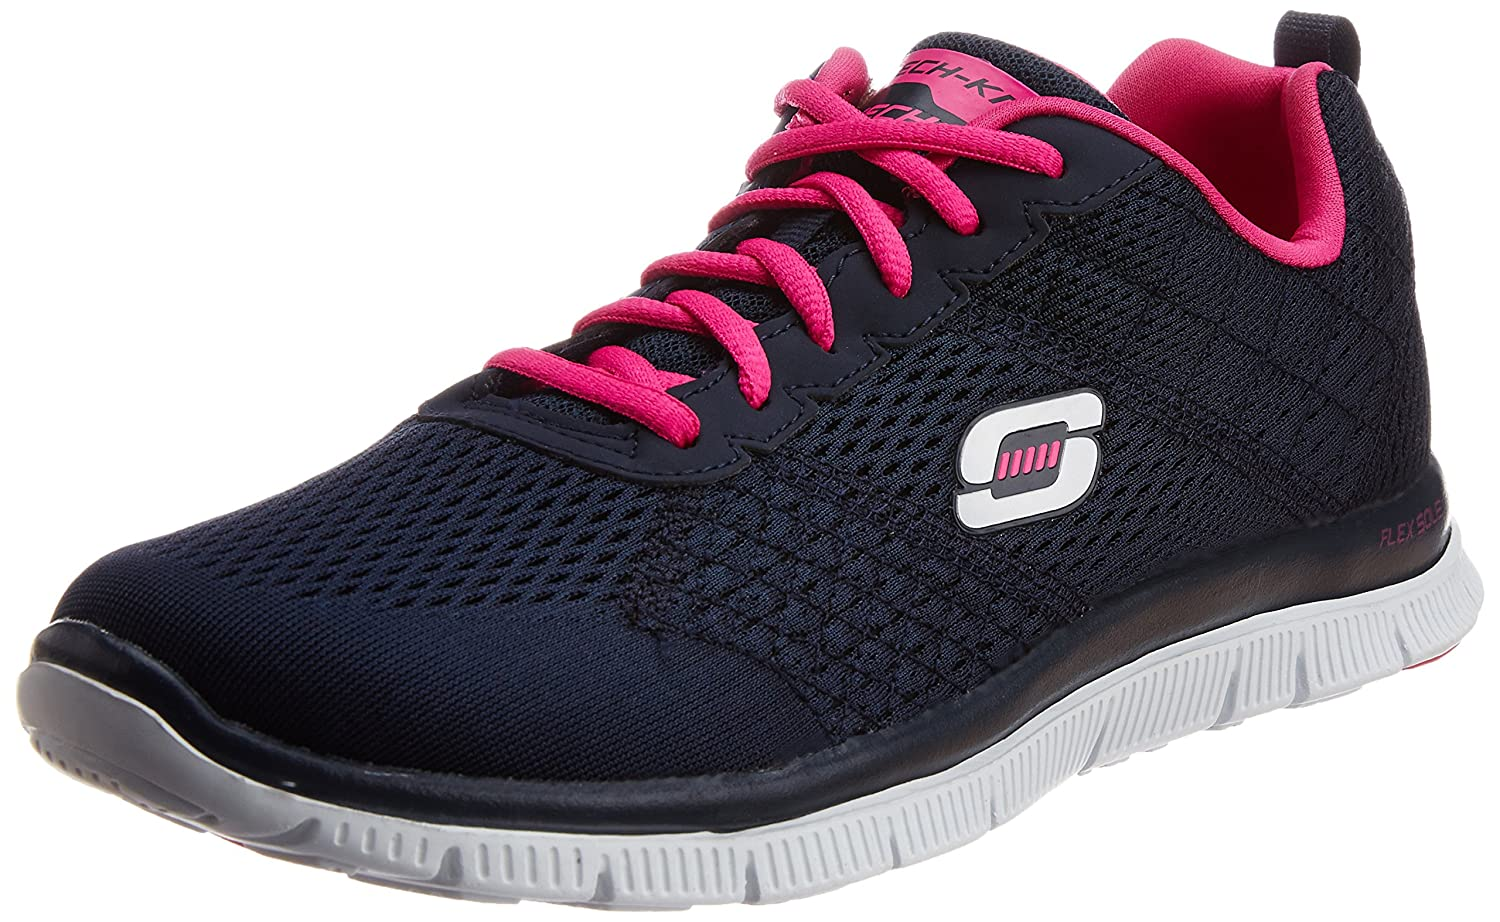 Skechers Sport Women's Obvious Choice Fashion Sneaker B01JPGL1OI 9.5 C/D US Women|Navy/Pink